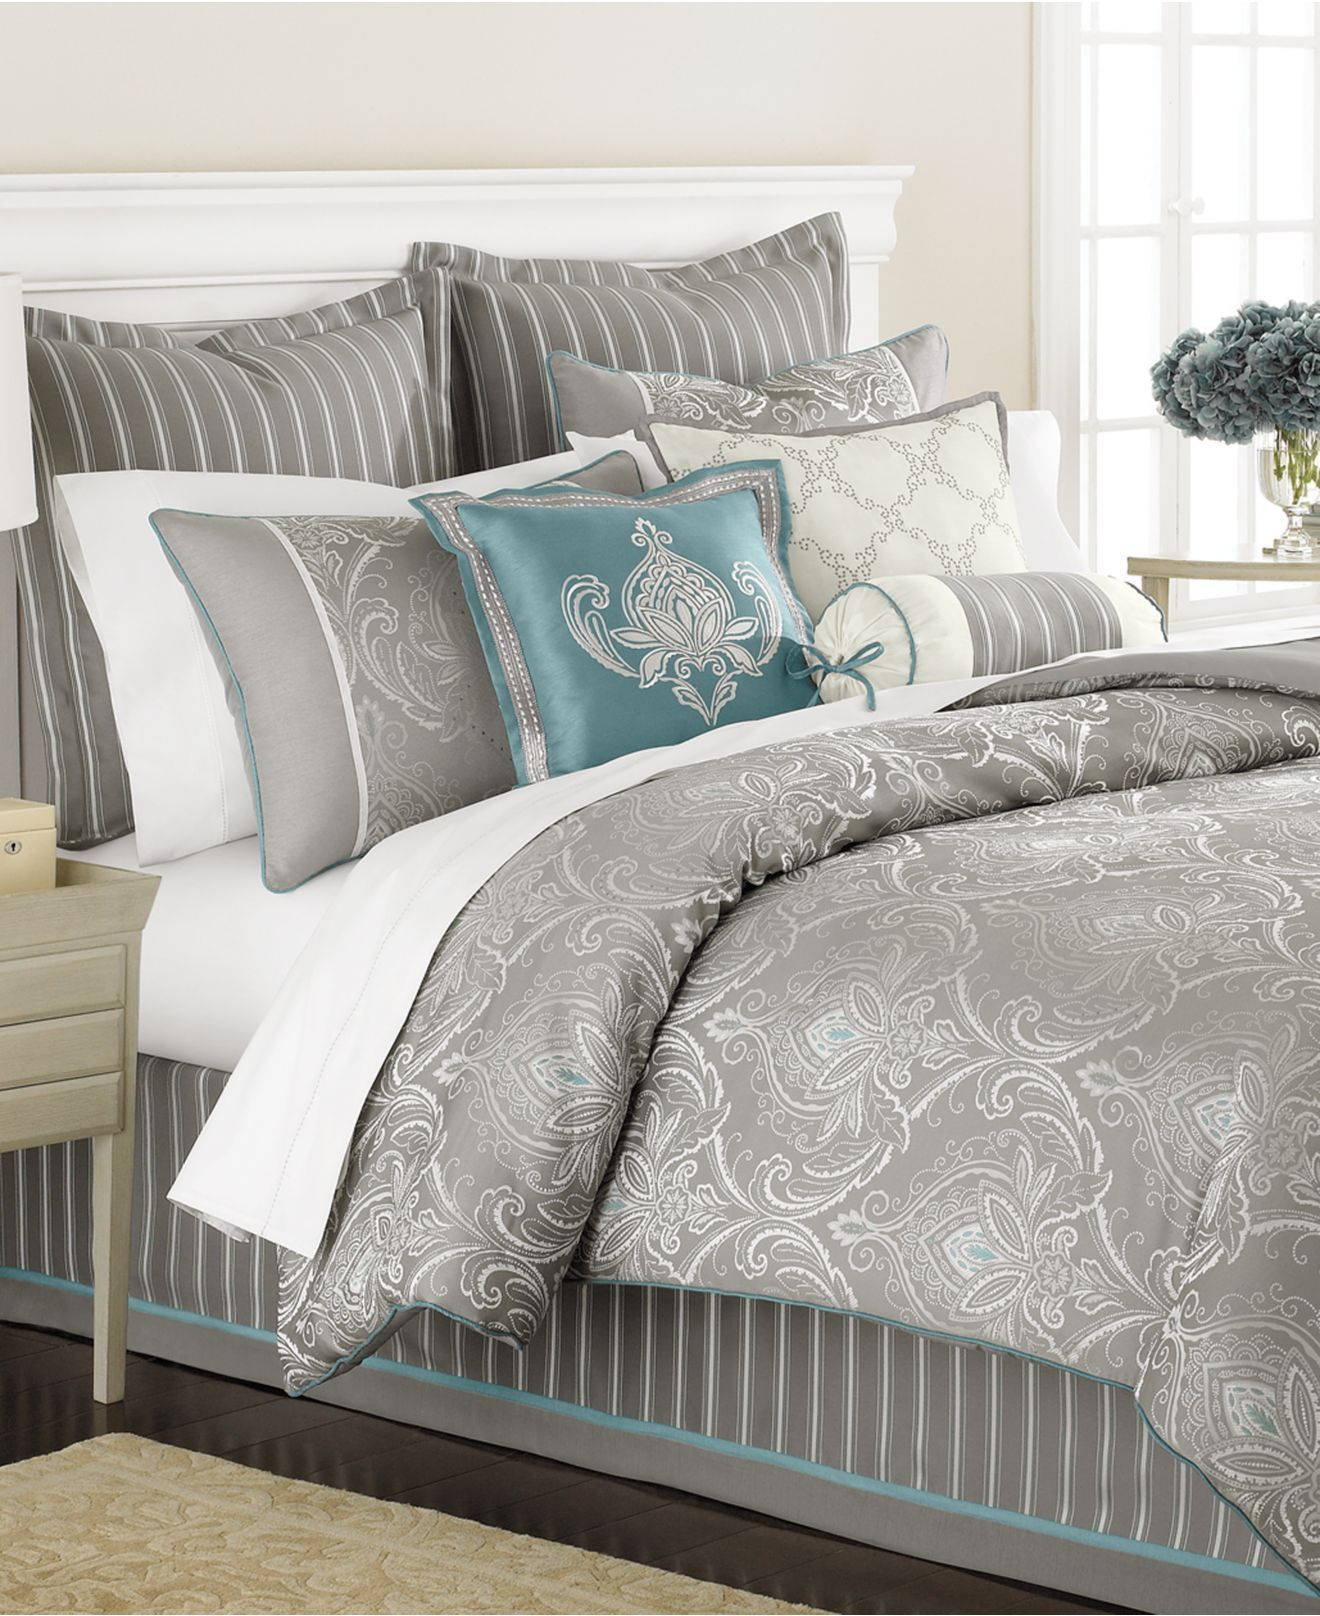 Awesome Martha Stewart Collection Bedding, Briercrest 9 Piece Comforter Set   King  Bed   Master Bedroom